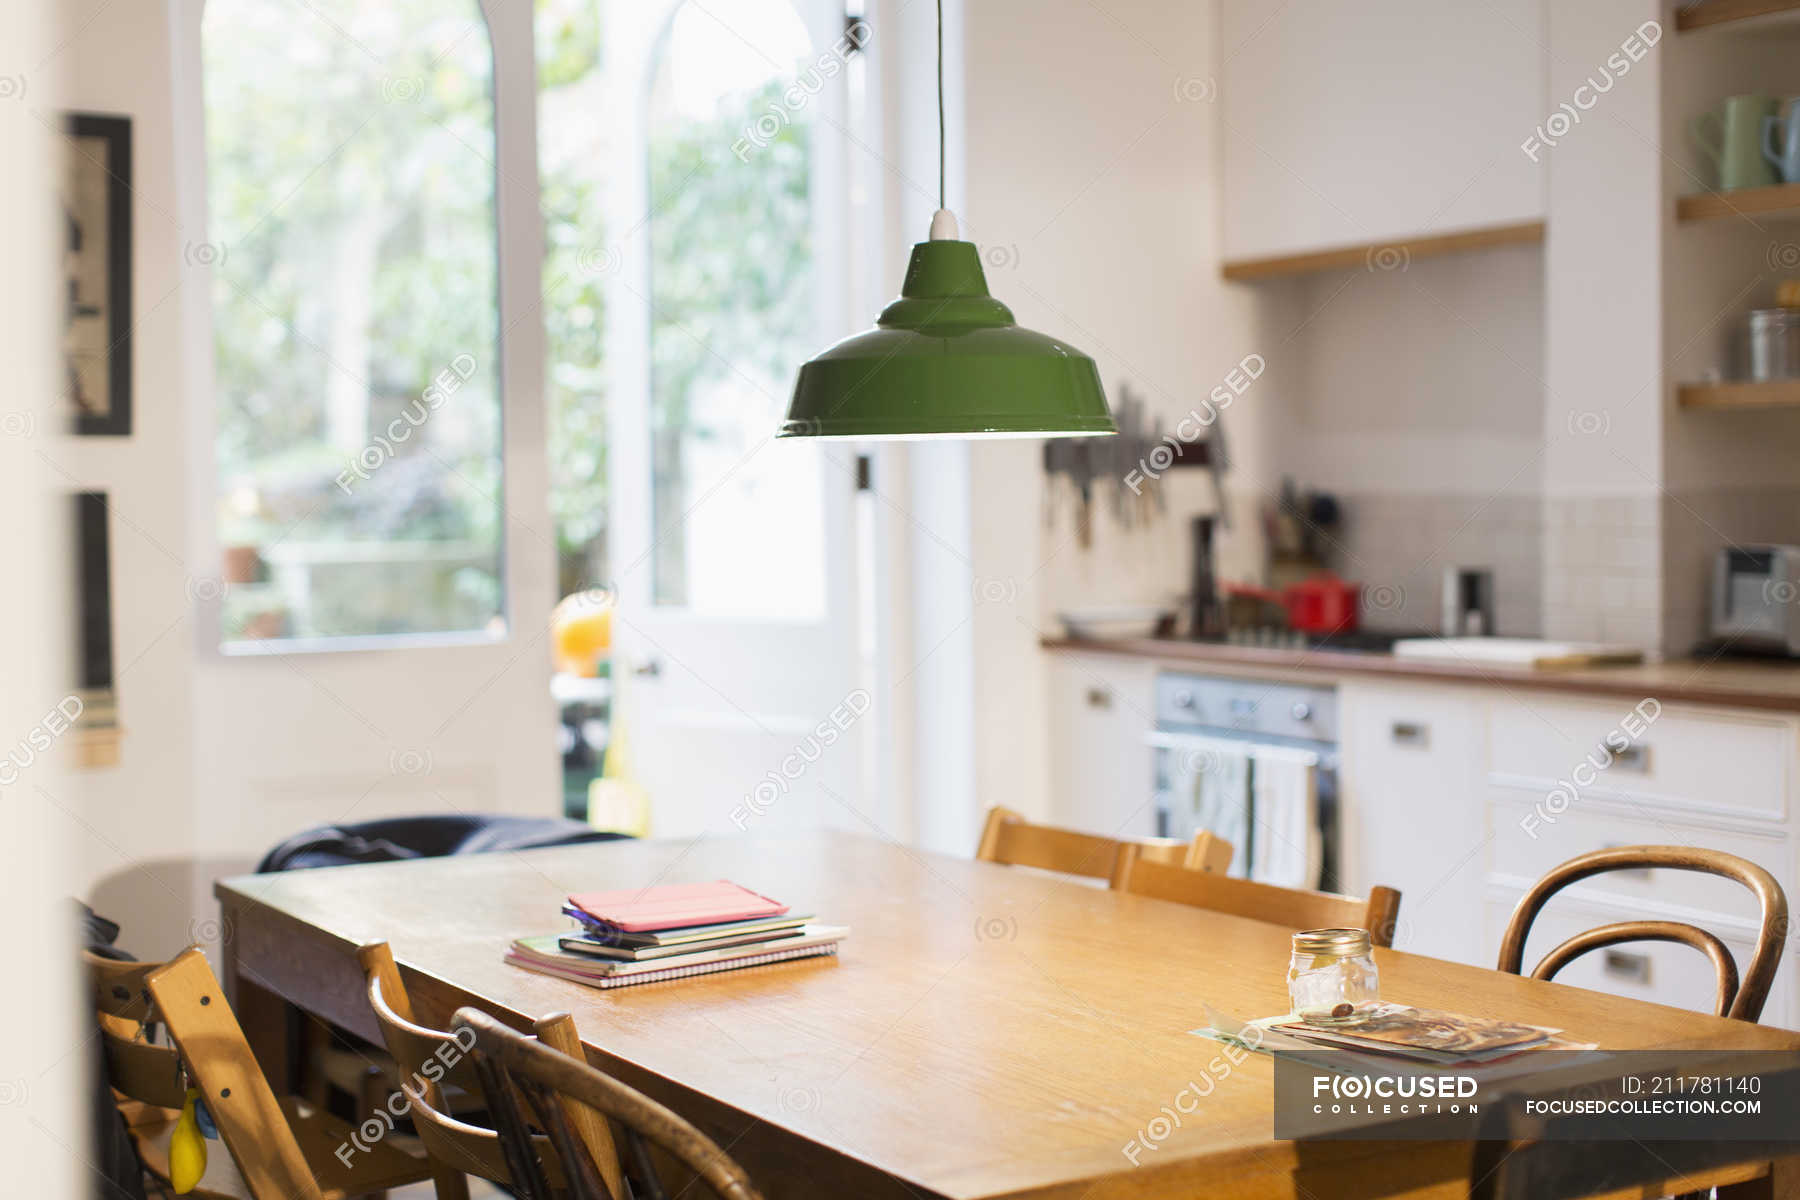 Green Pendant Light Hanging Over Dining